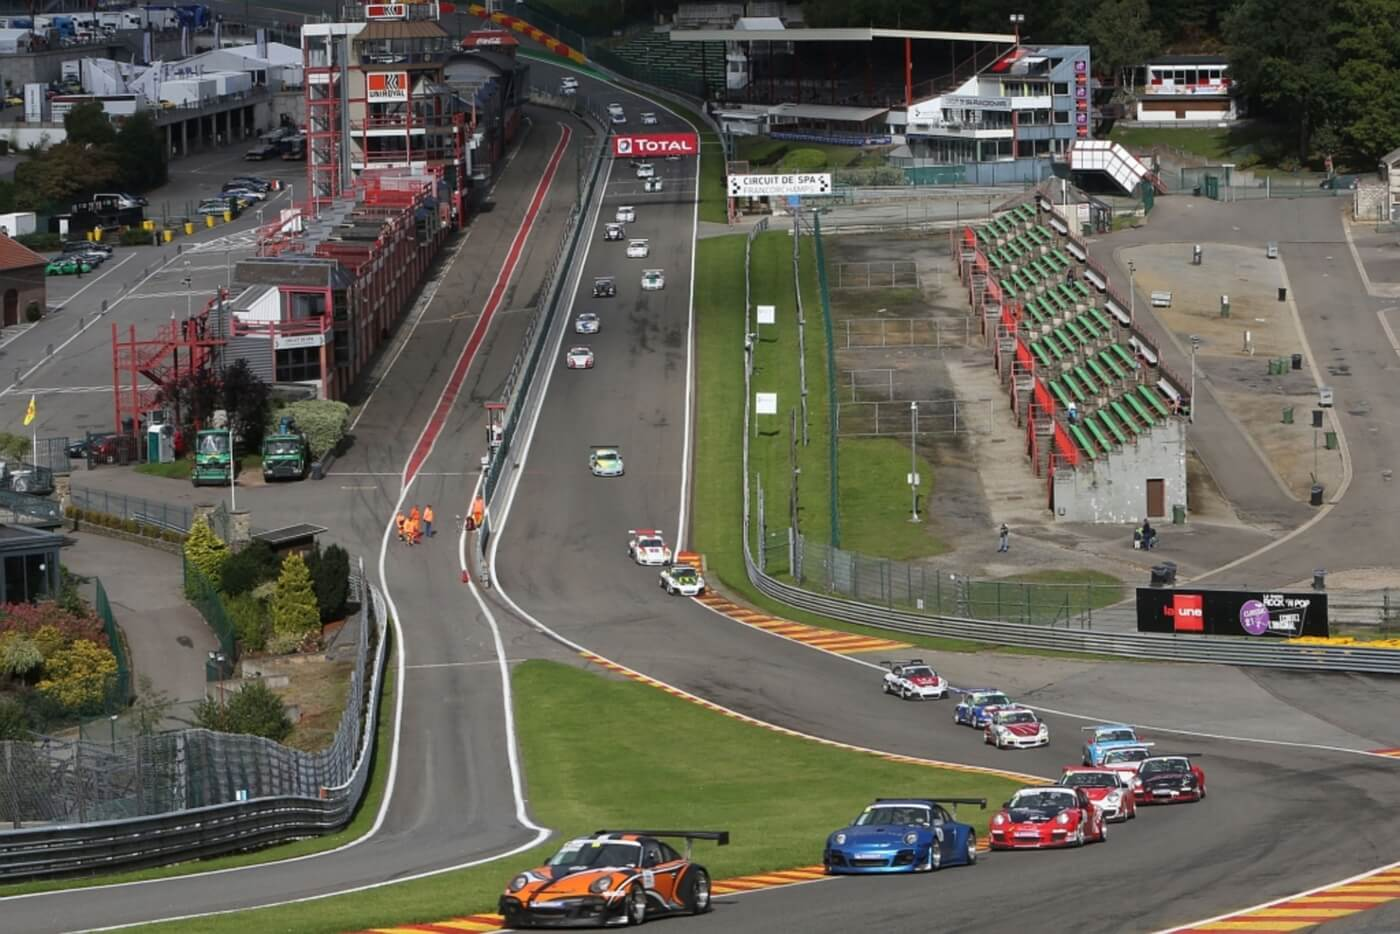 Porsche Sports Cup in Spa-Francorchamps